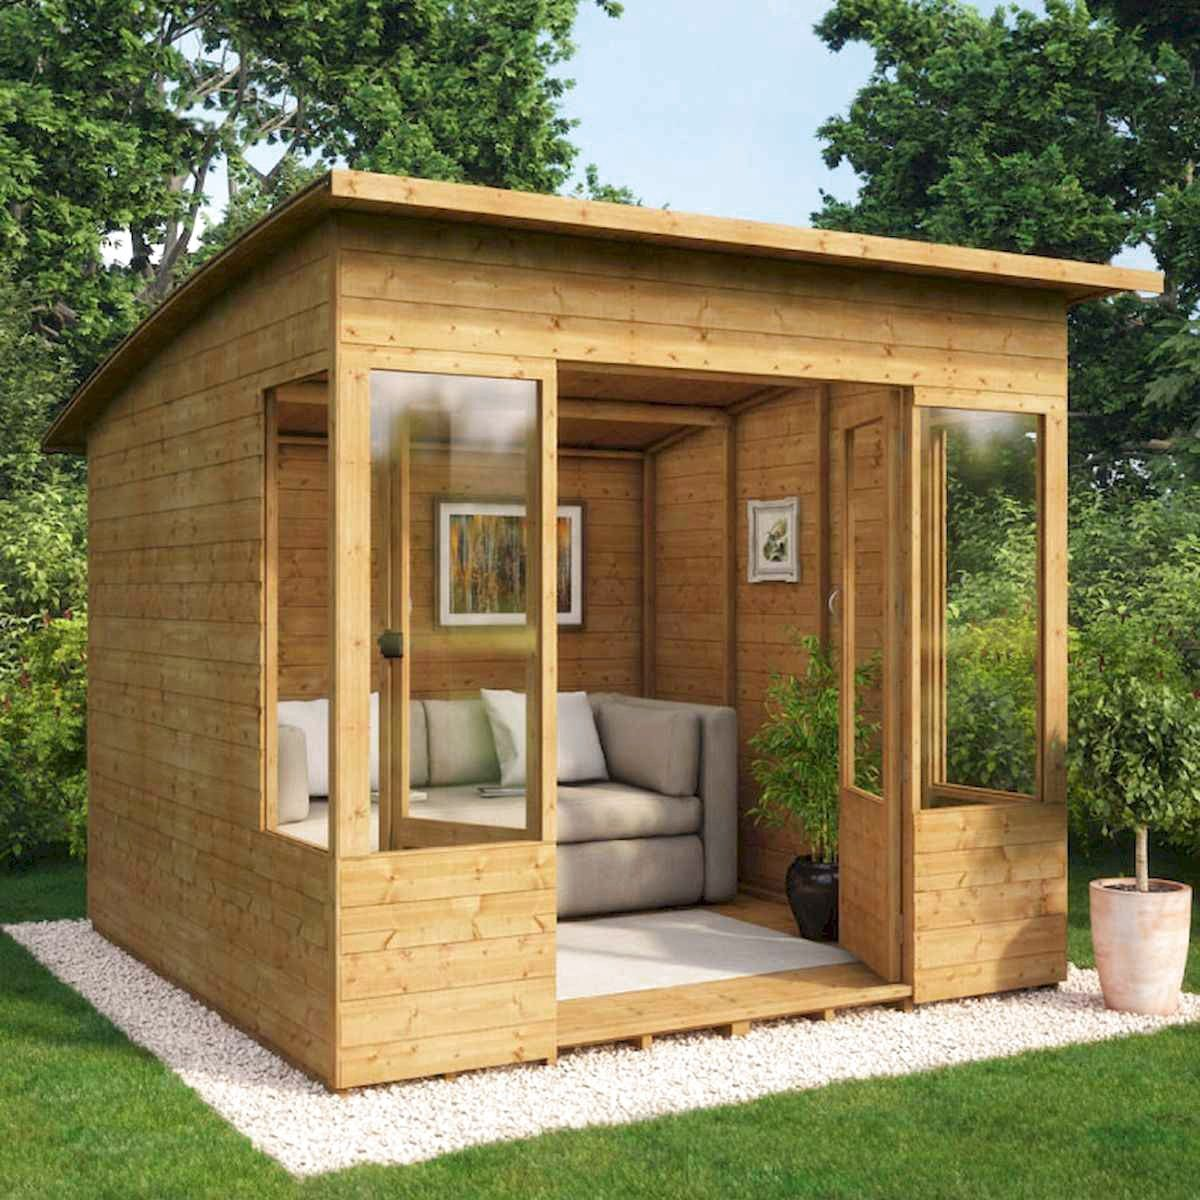 76 Favourite Summer House Design Ideas And Makeover ...